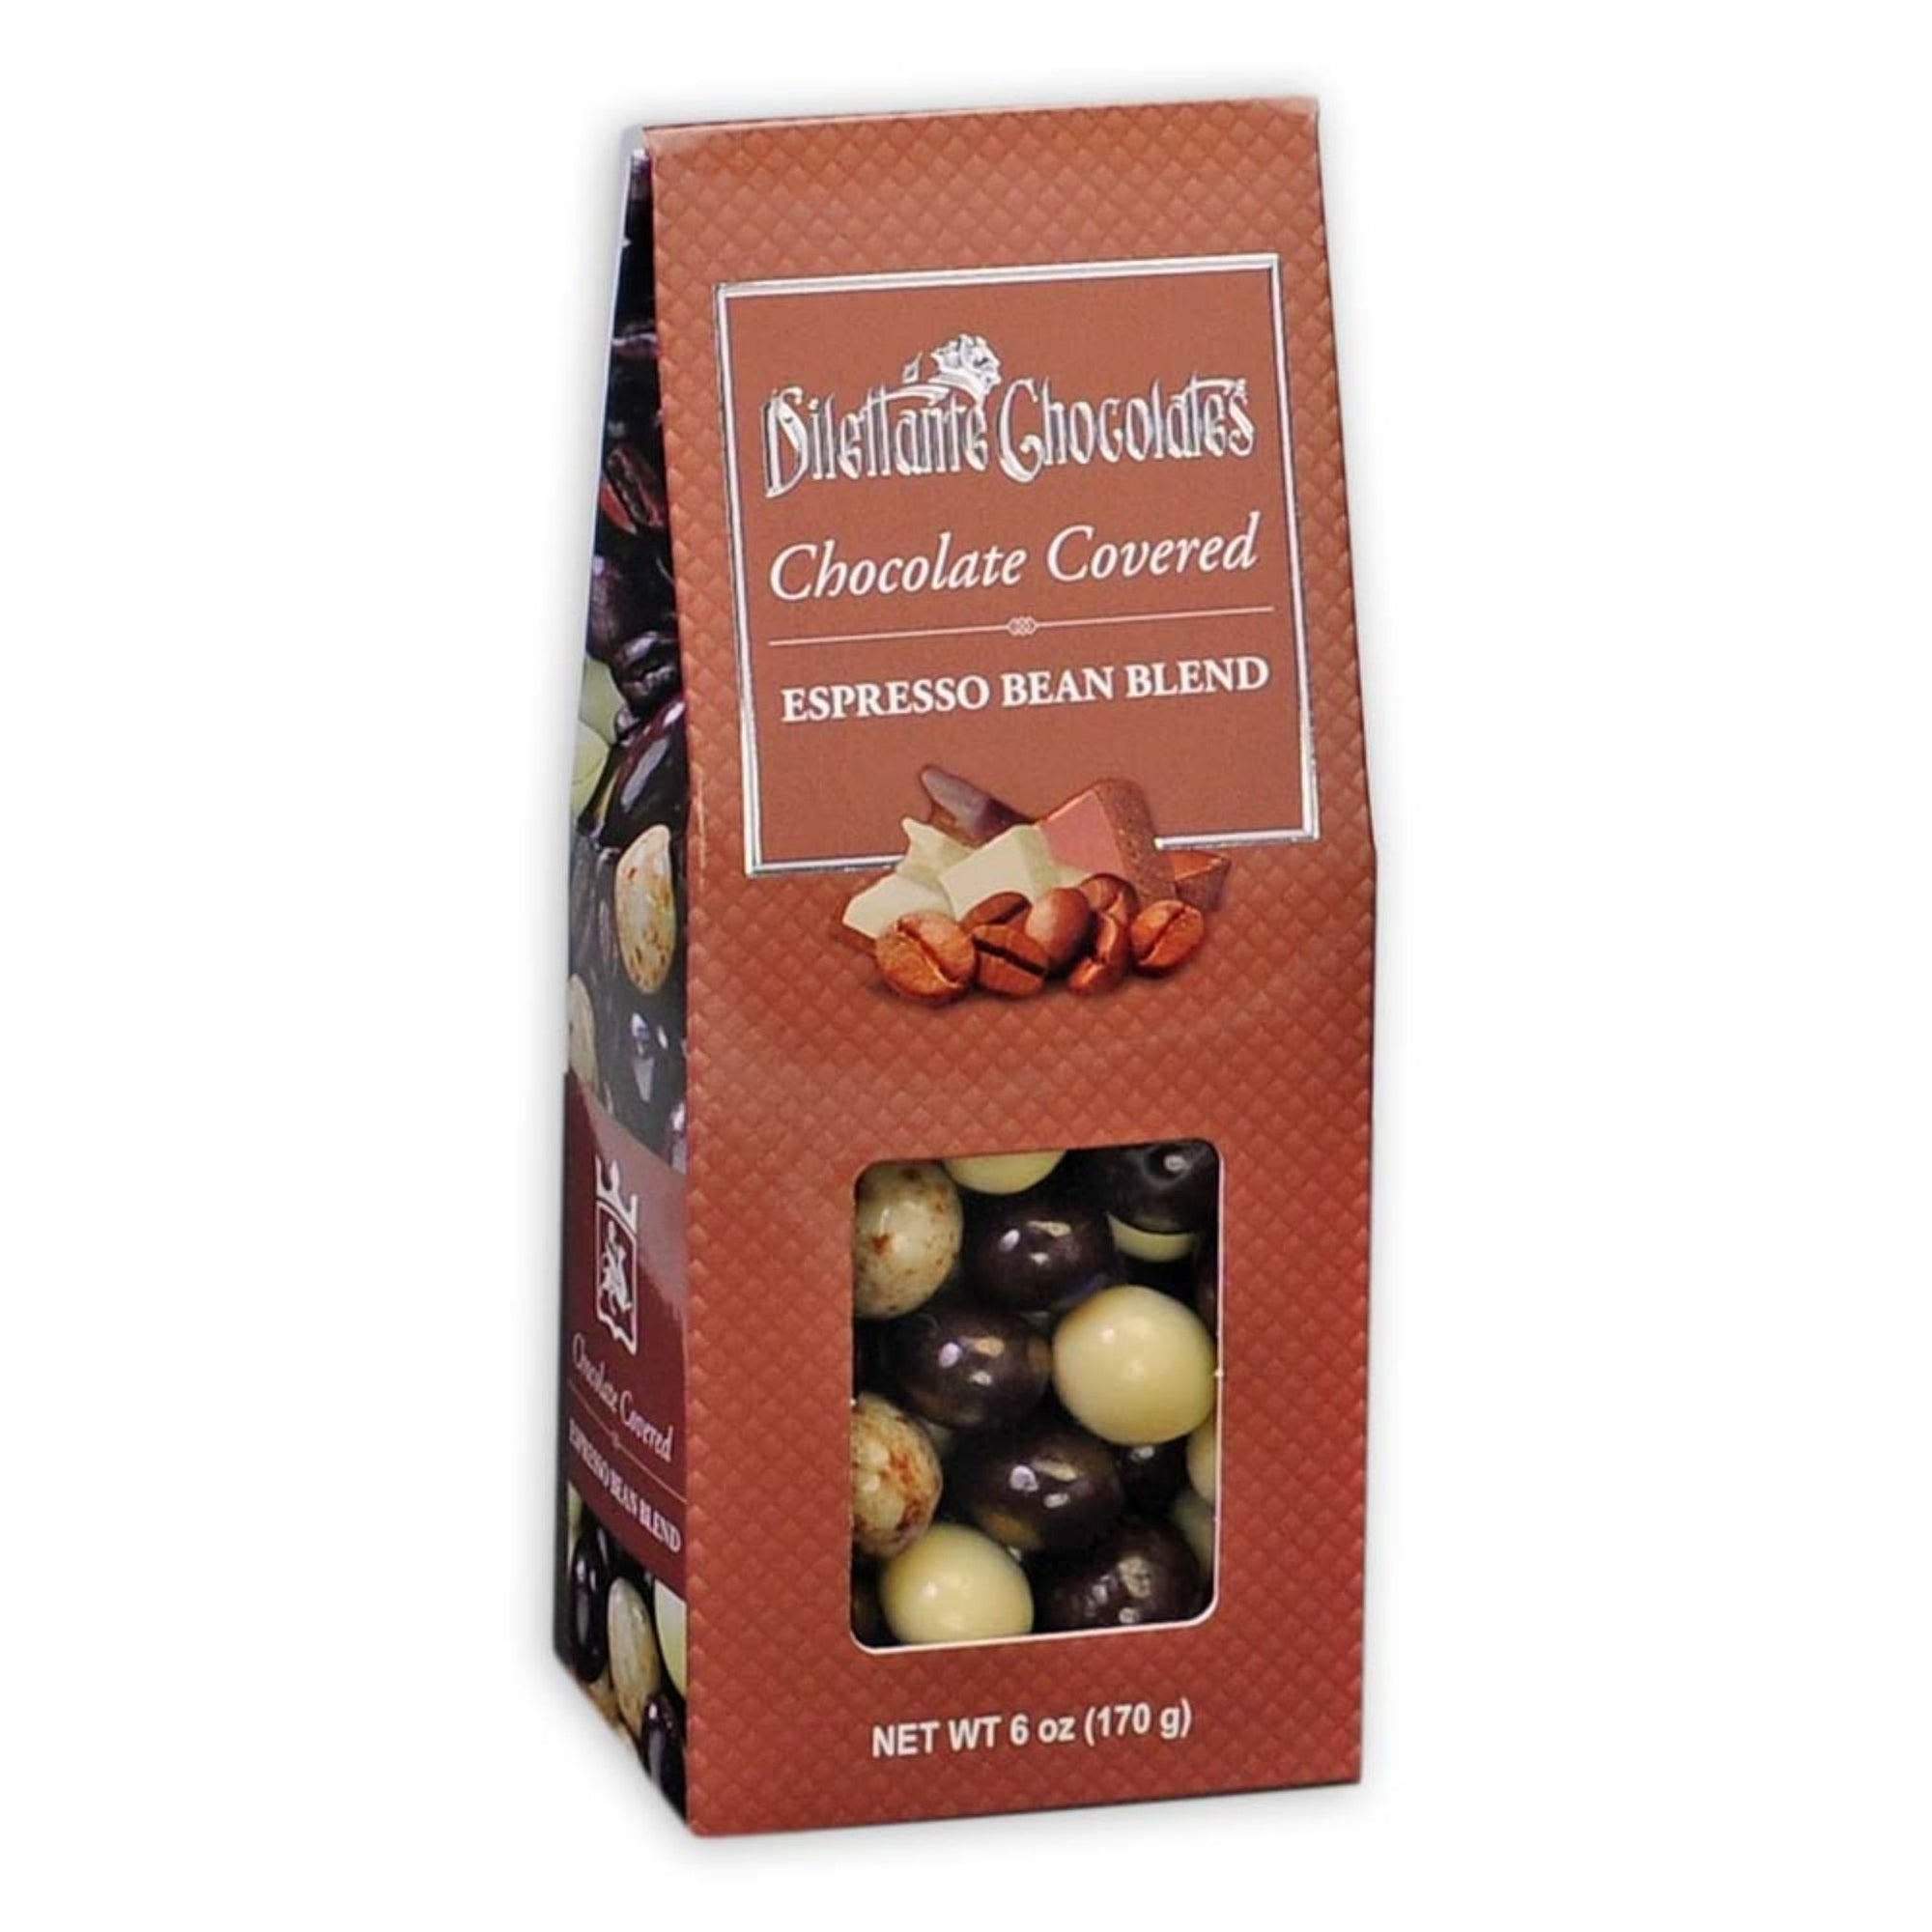 Dilettante Chocolates Chocolate-Covered Espresso Bean Blend in an Elegant Brown Gift Box